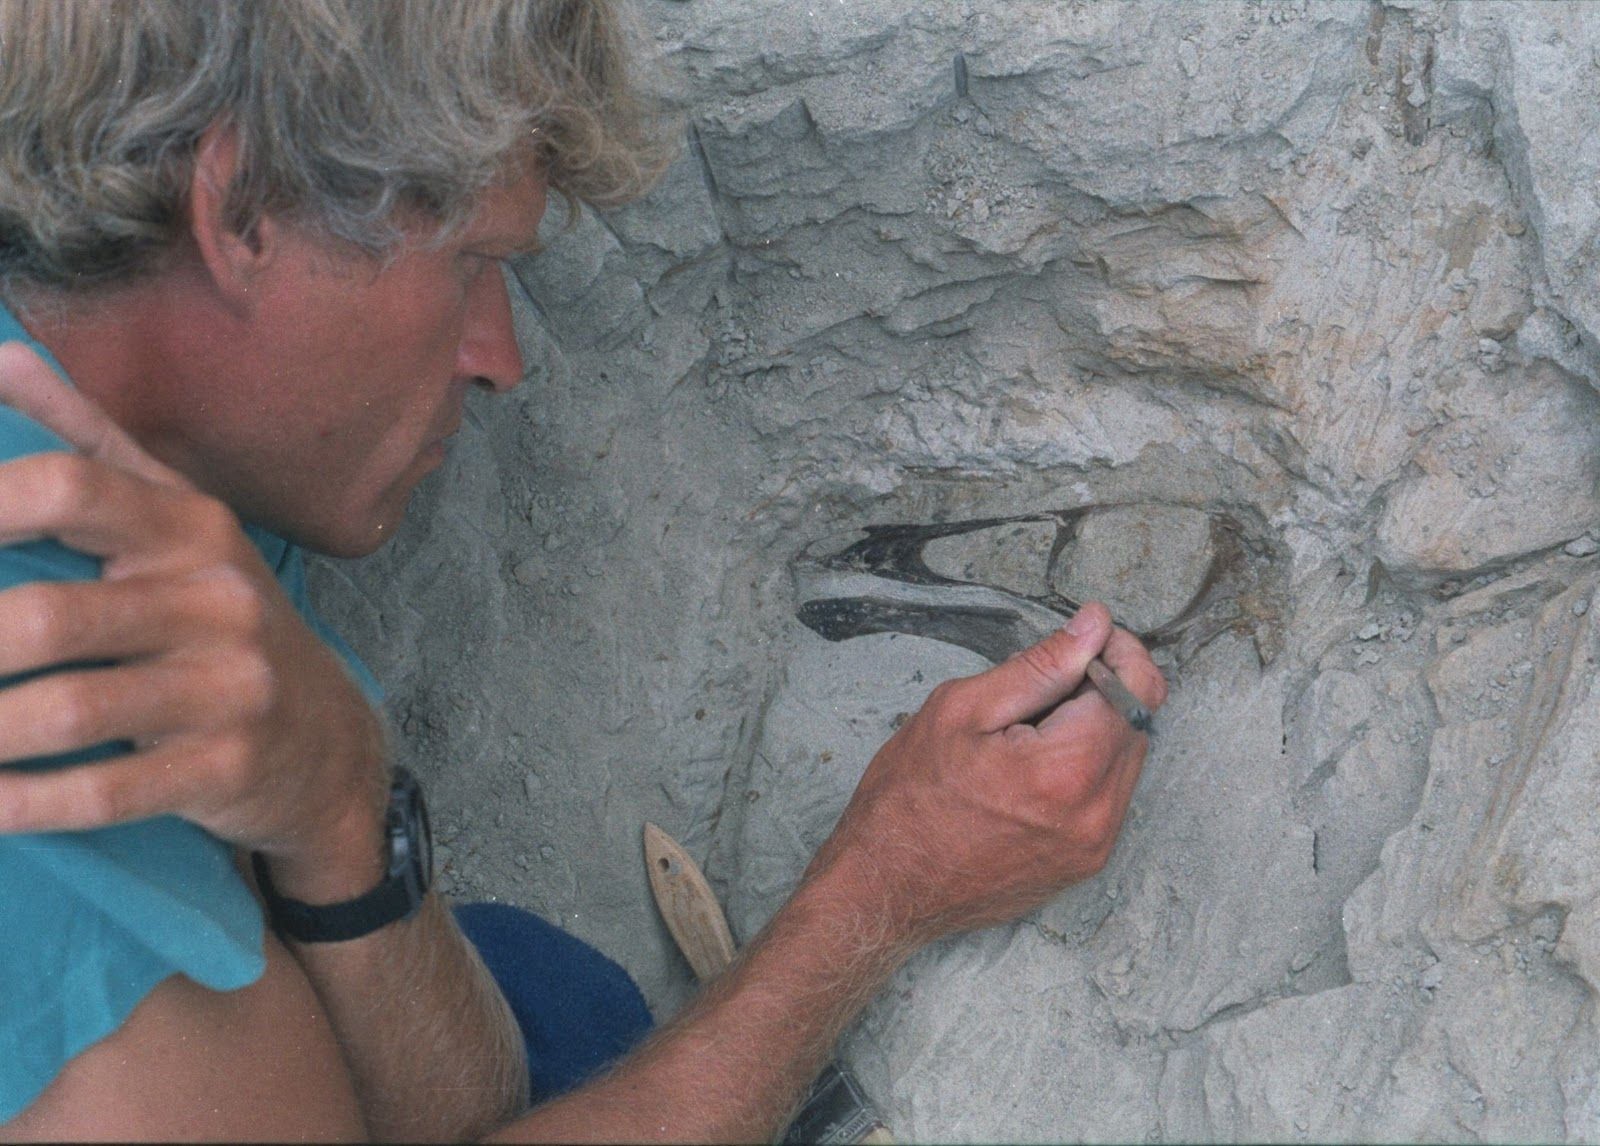 Dr. Philip J. Currie - Palaeontologist extraordinaire - excavating an Ornithomimid skull in Dinosaur Provincial Park.